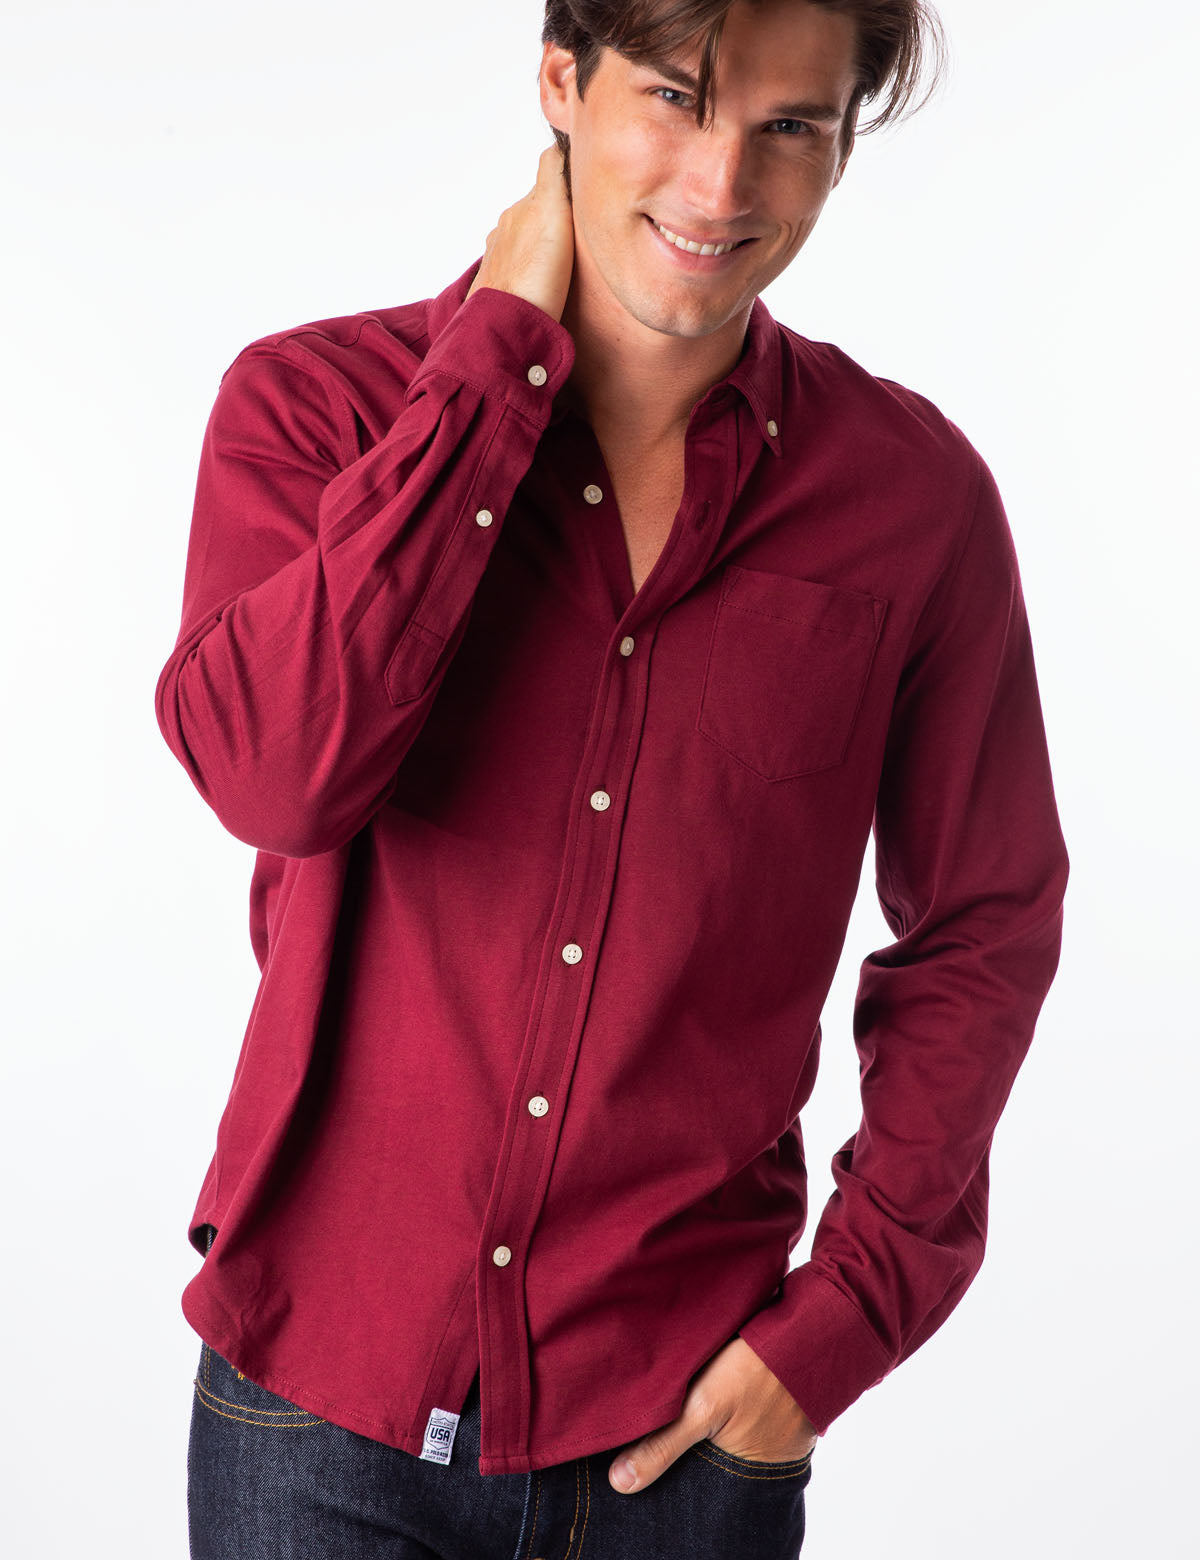 SOLID BUTTON DOWN JERESEY SHIRT - U.S. Polo Assn.